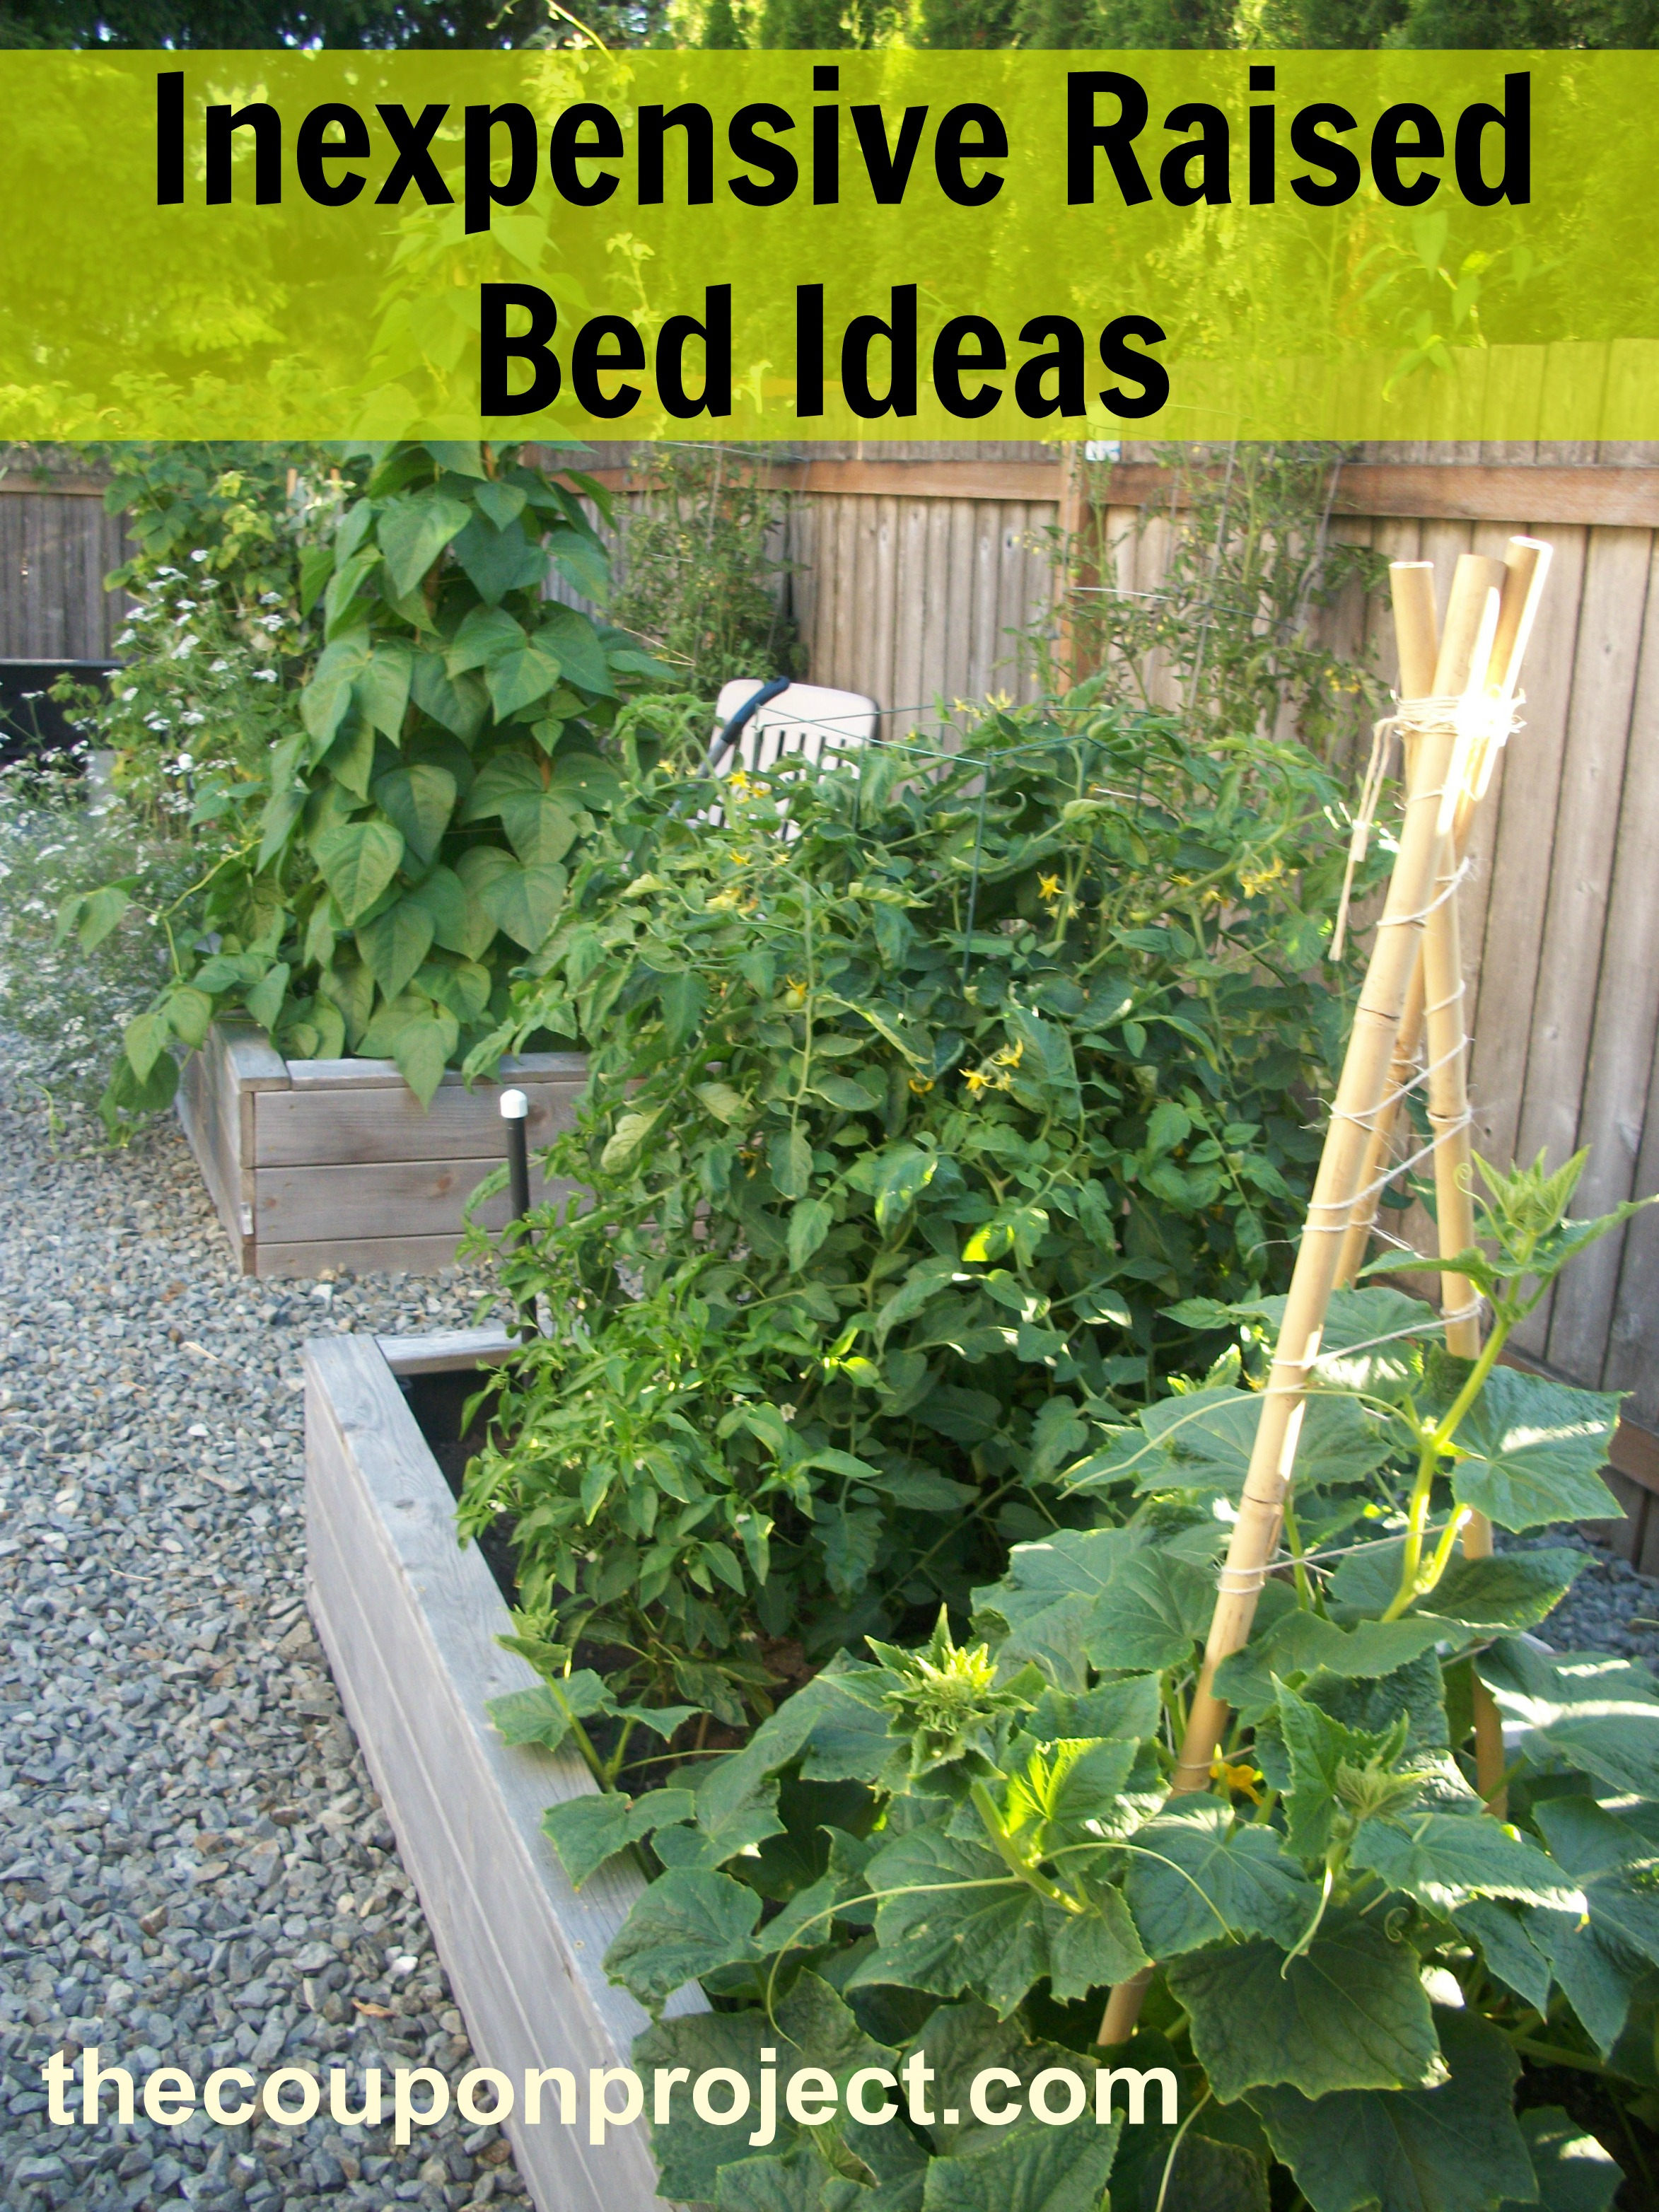 How To Make Inexpensive Raised Beds Four Different Ideas